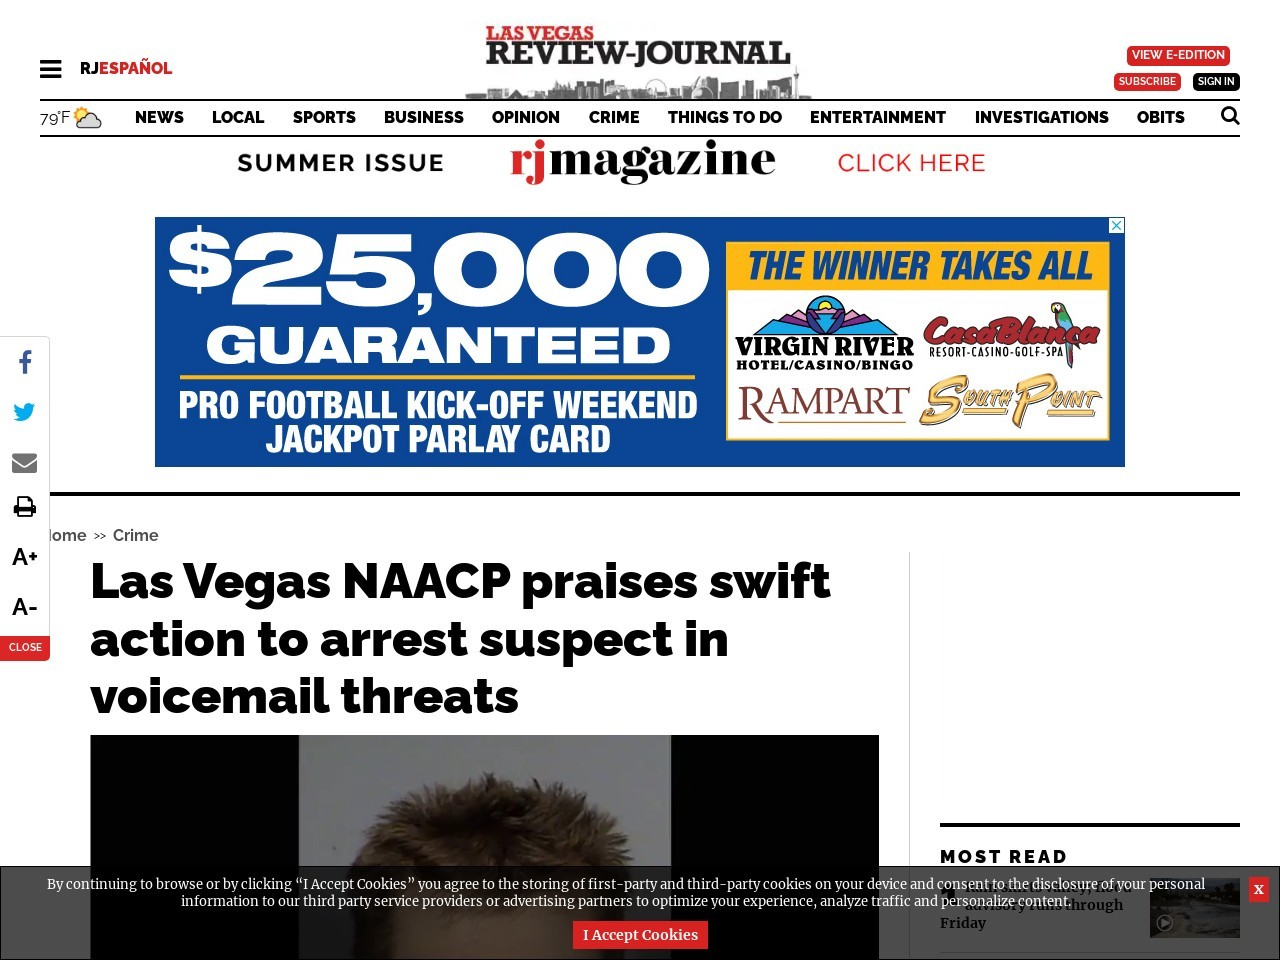 Las Vegas NAACP praises swift action to arrest suspect in voicemail threats